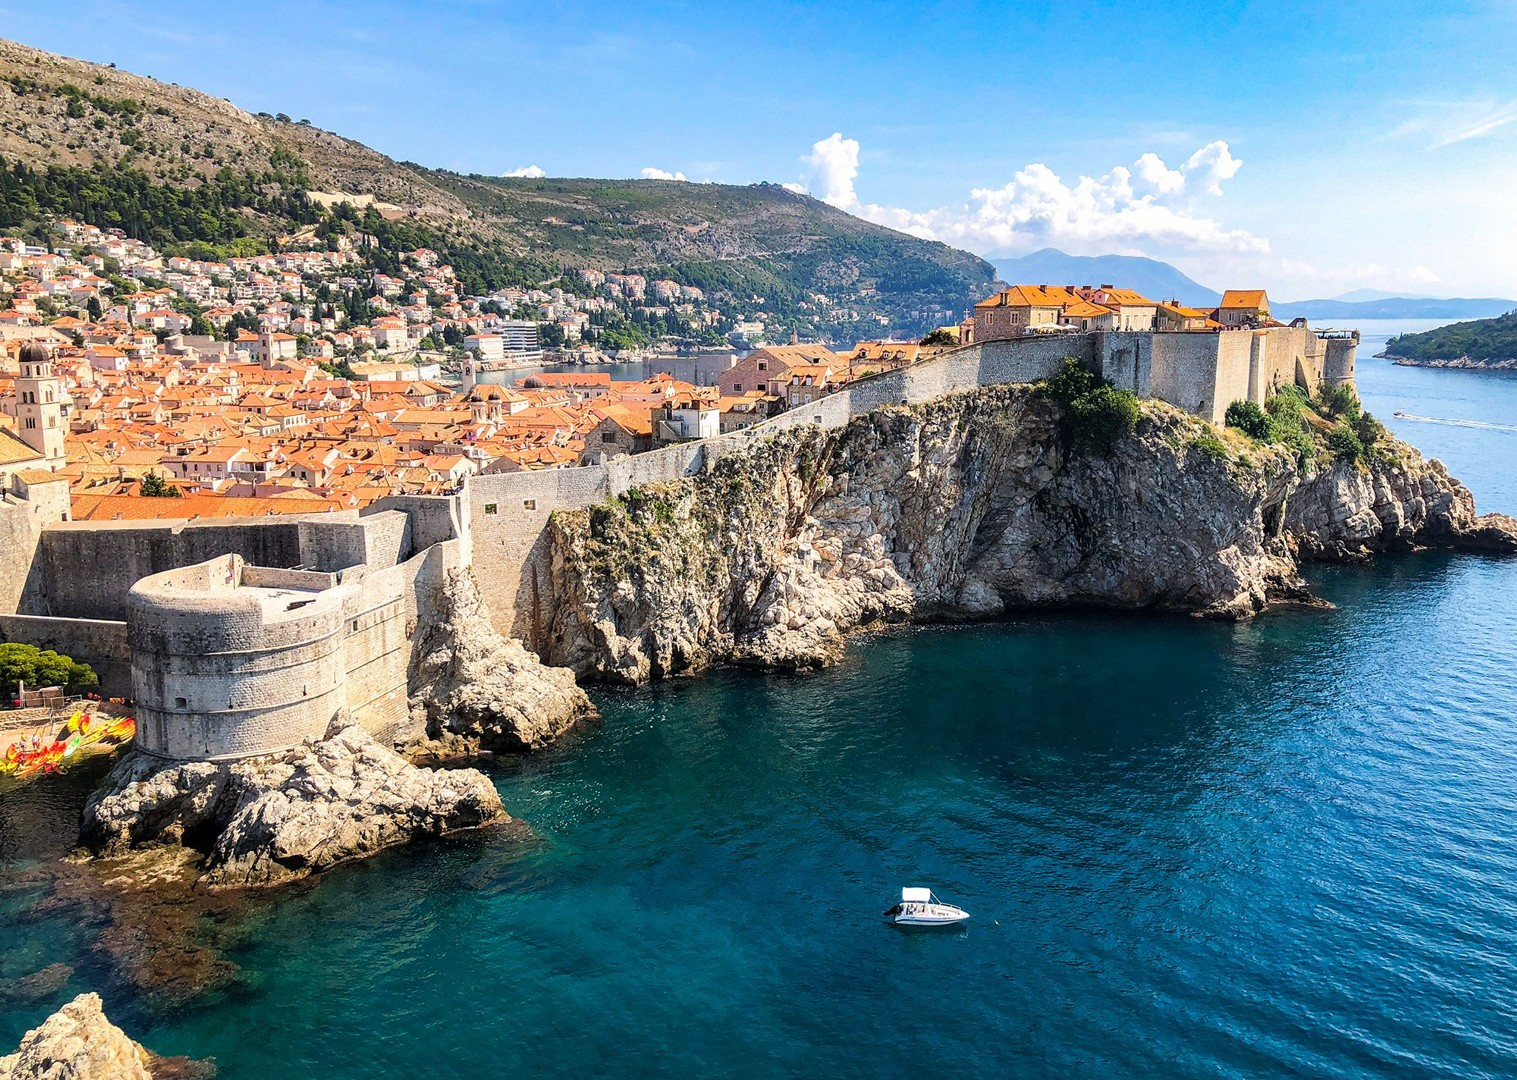 dubrovnik-guided-cycling-road-holiday-islands-of-dalmatian-coast.jpg - Croatia - Islands of the Dalmatian Coast - Guided Road Cycling Holiday - Road Cycling